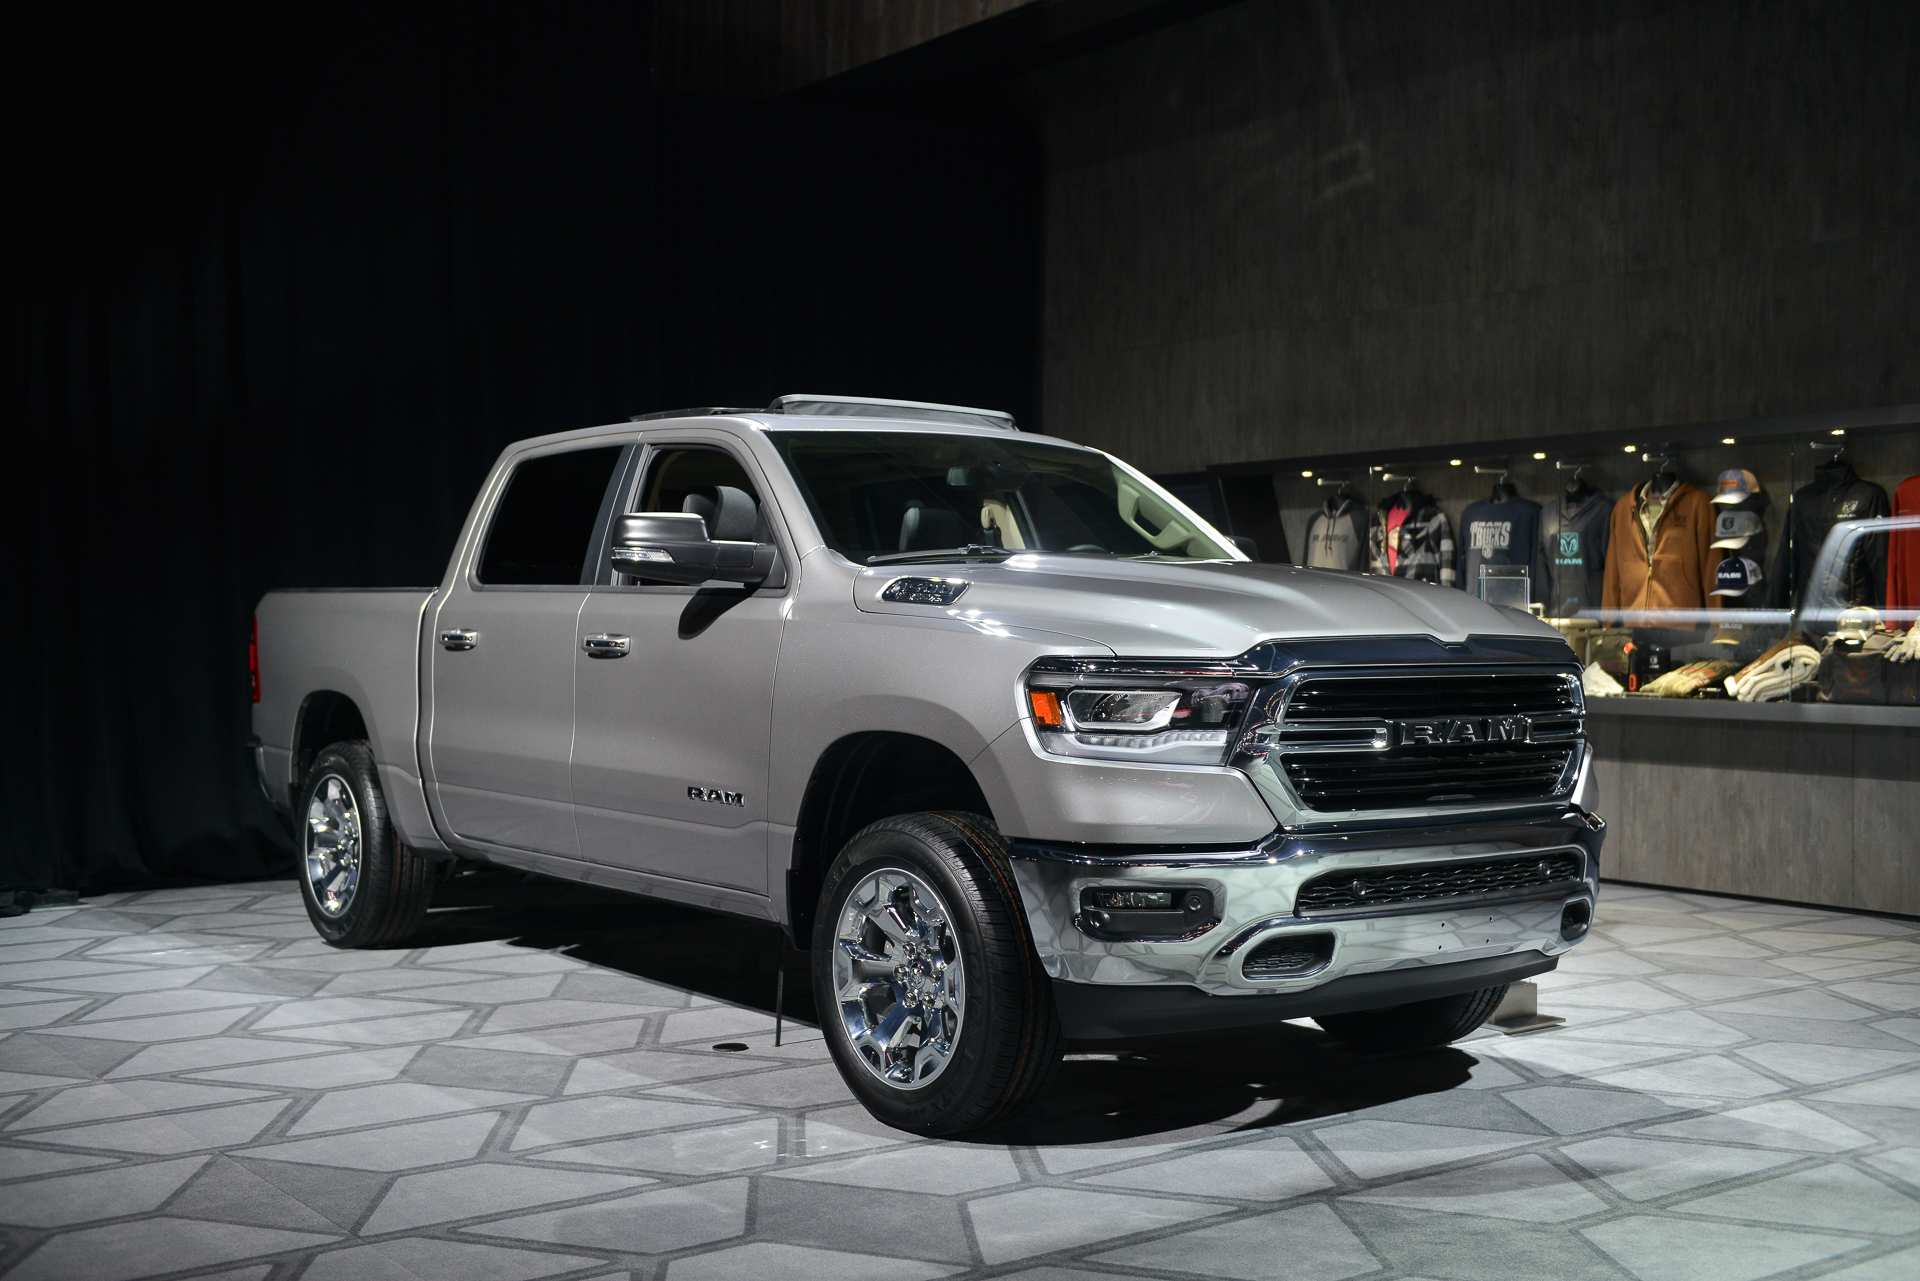 49 New Best Dodge Laramie 2019 Concept Prices with Best Dodge Laramie 2019 Concept